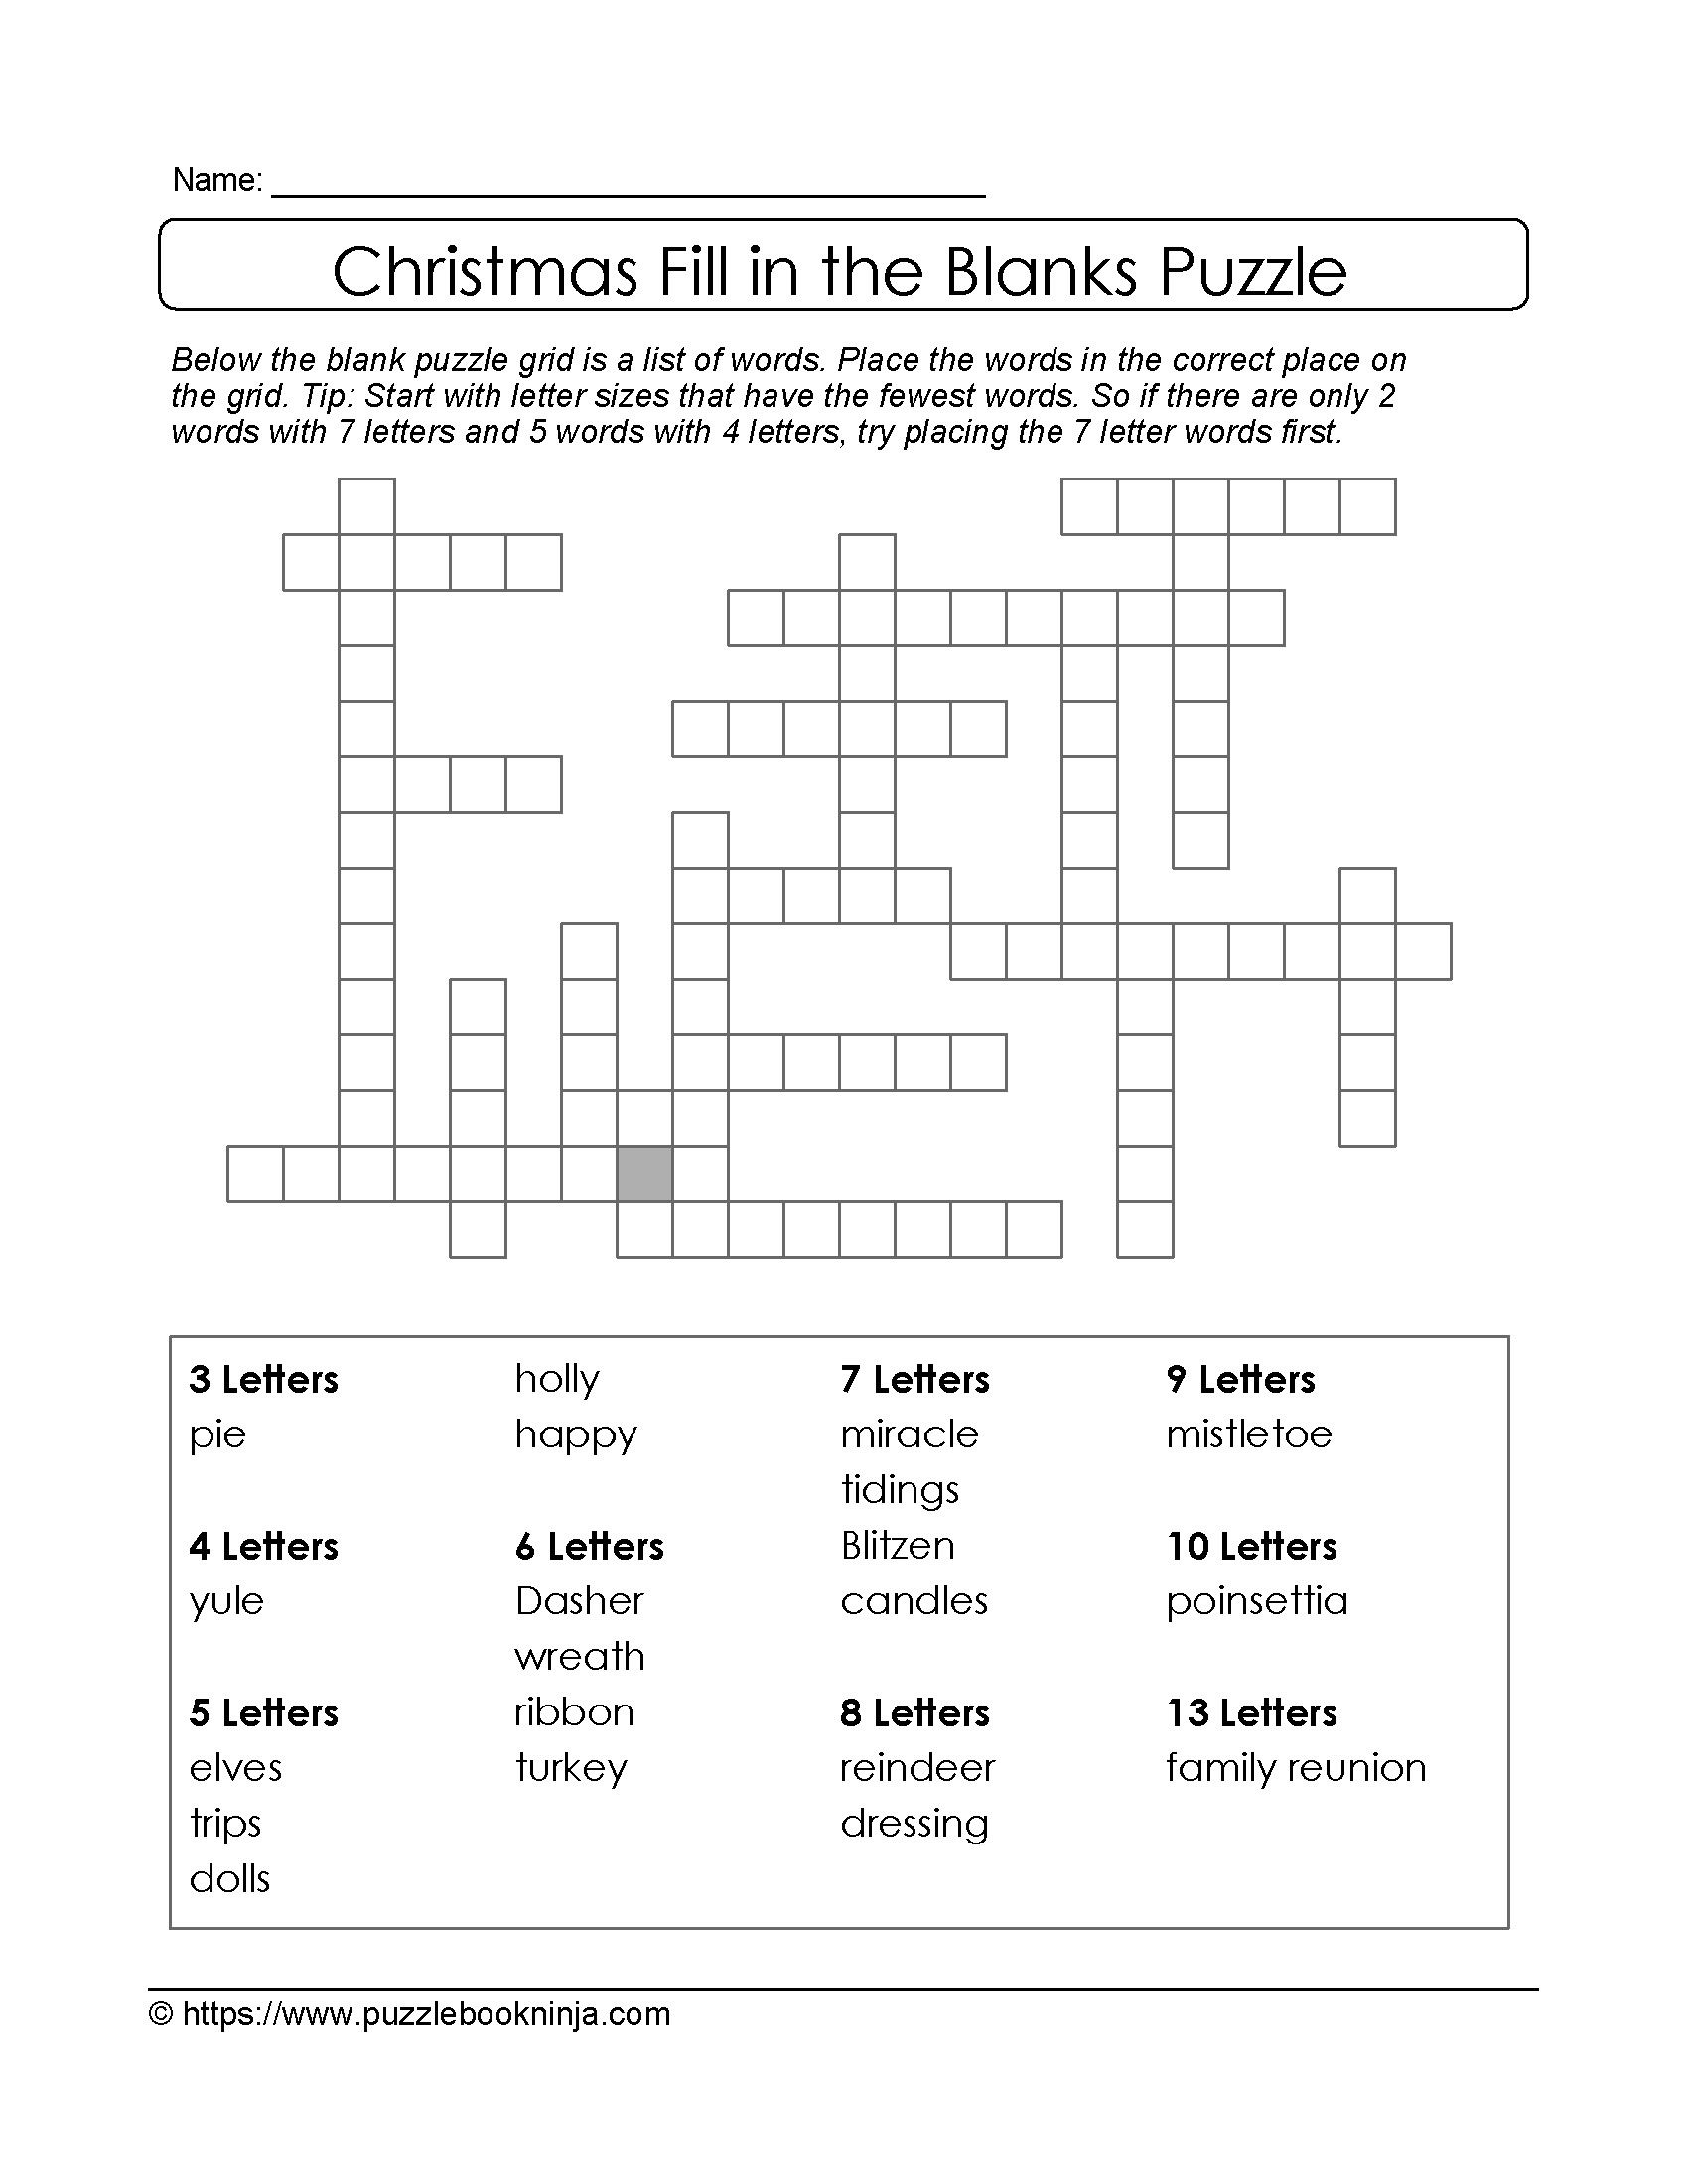 Puzzles To Print Downloadable Christmas Puzzle